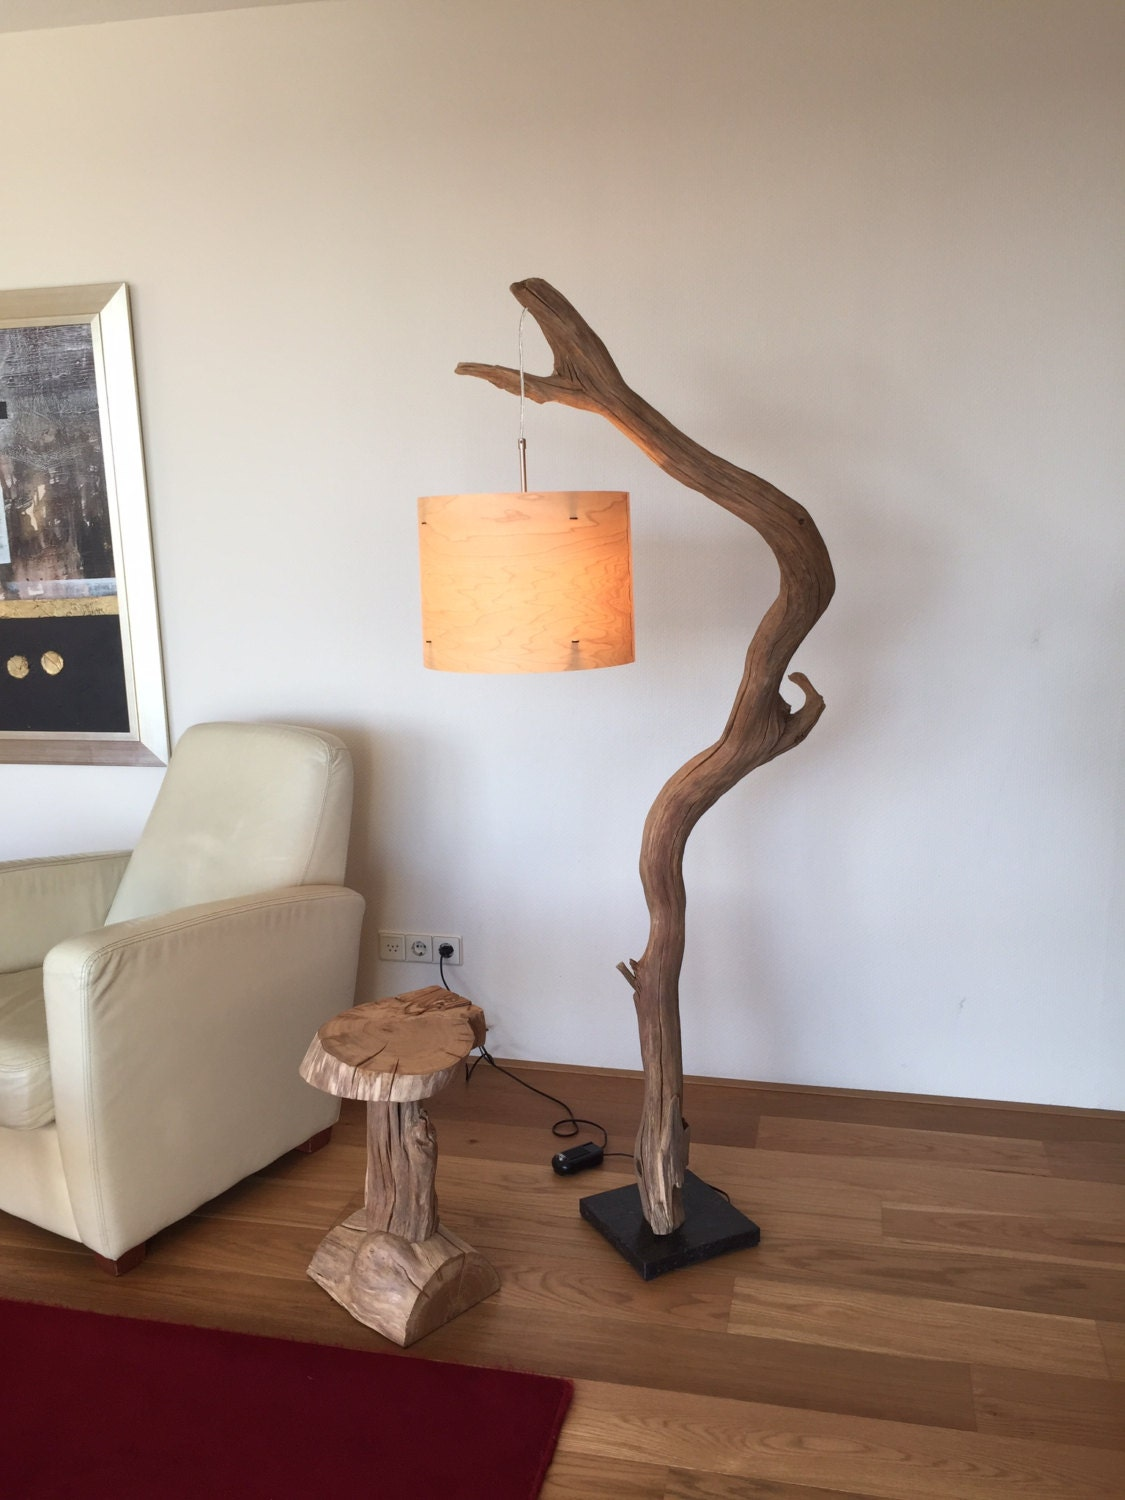 Floor Lamp And Arc Lamp Made Of Weathered Old Oak Branch On